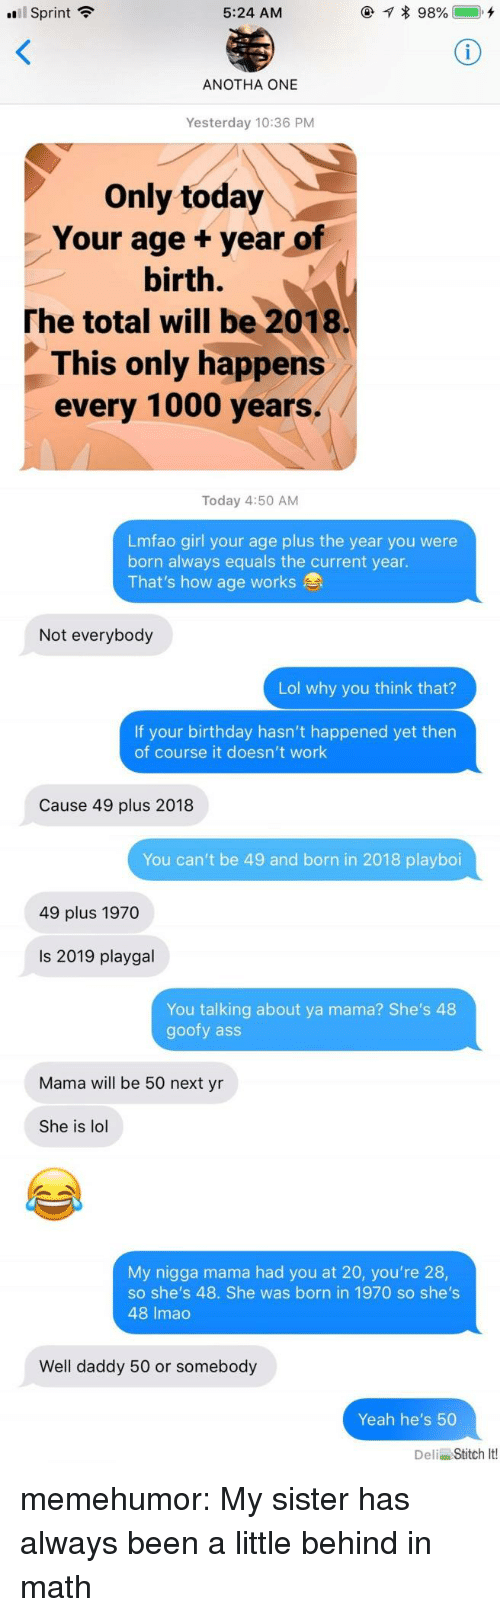 Ass, Birthday, and Lol: Sprint  5:24 AM  ANOTHA ONE  Yesterday 10:36 PM  Only today  Your age +year of  birth.  The total will be 2018.  This only happens  every 1000 years.  Today 4:50 AM  Lmfao girl your age plus the year you were  born always equals the current year.  That's how age works  Not everybody  Lol why you think that?  If your birthday hasn't happened yet then  of course it doesn't work  Cause 49 plus 2018  You can't be 49 and born in 2018 playboi  49 plus 1970  Is 2019 playgal  You talking about ya mama? She's 48  goofy ass  Mama will be 50 next yn  She is lol  My nigga mama had you at 20, you're 28,  so she's 48. She was born in 1970 so she's  48 Imac  Well daddy 50 or somebody  Yeah he's 50  Deli Stitch It! memehumor:  My sister has always been a little behind in math